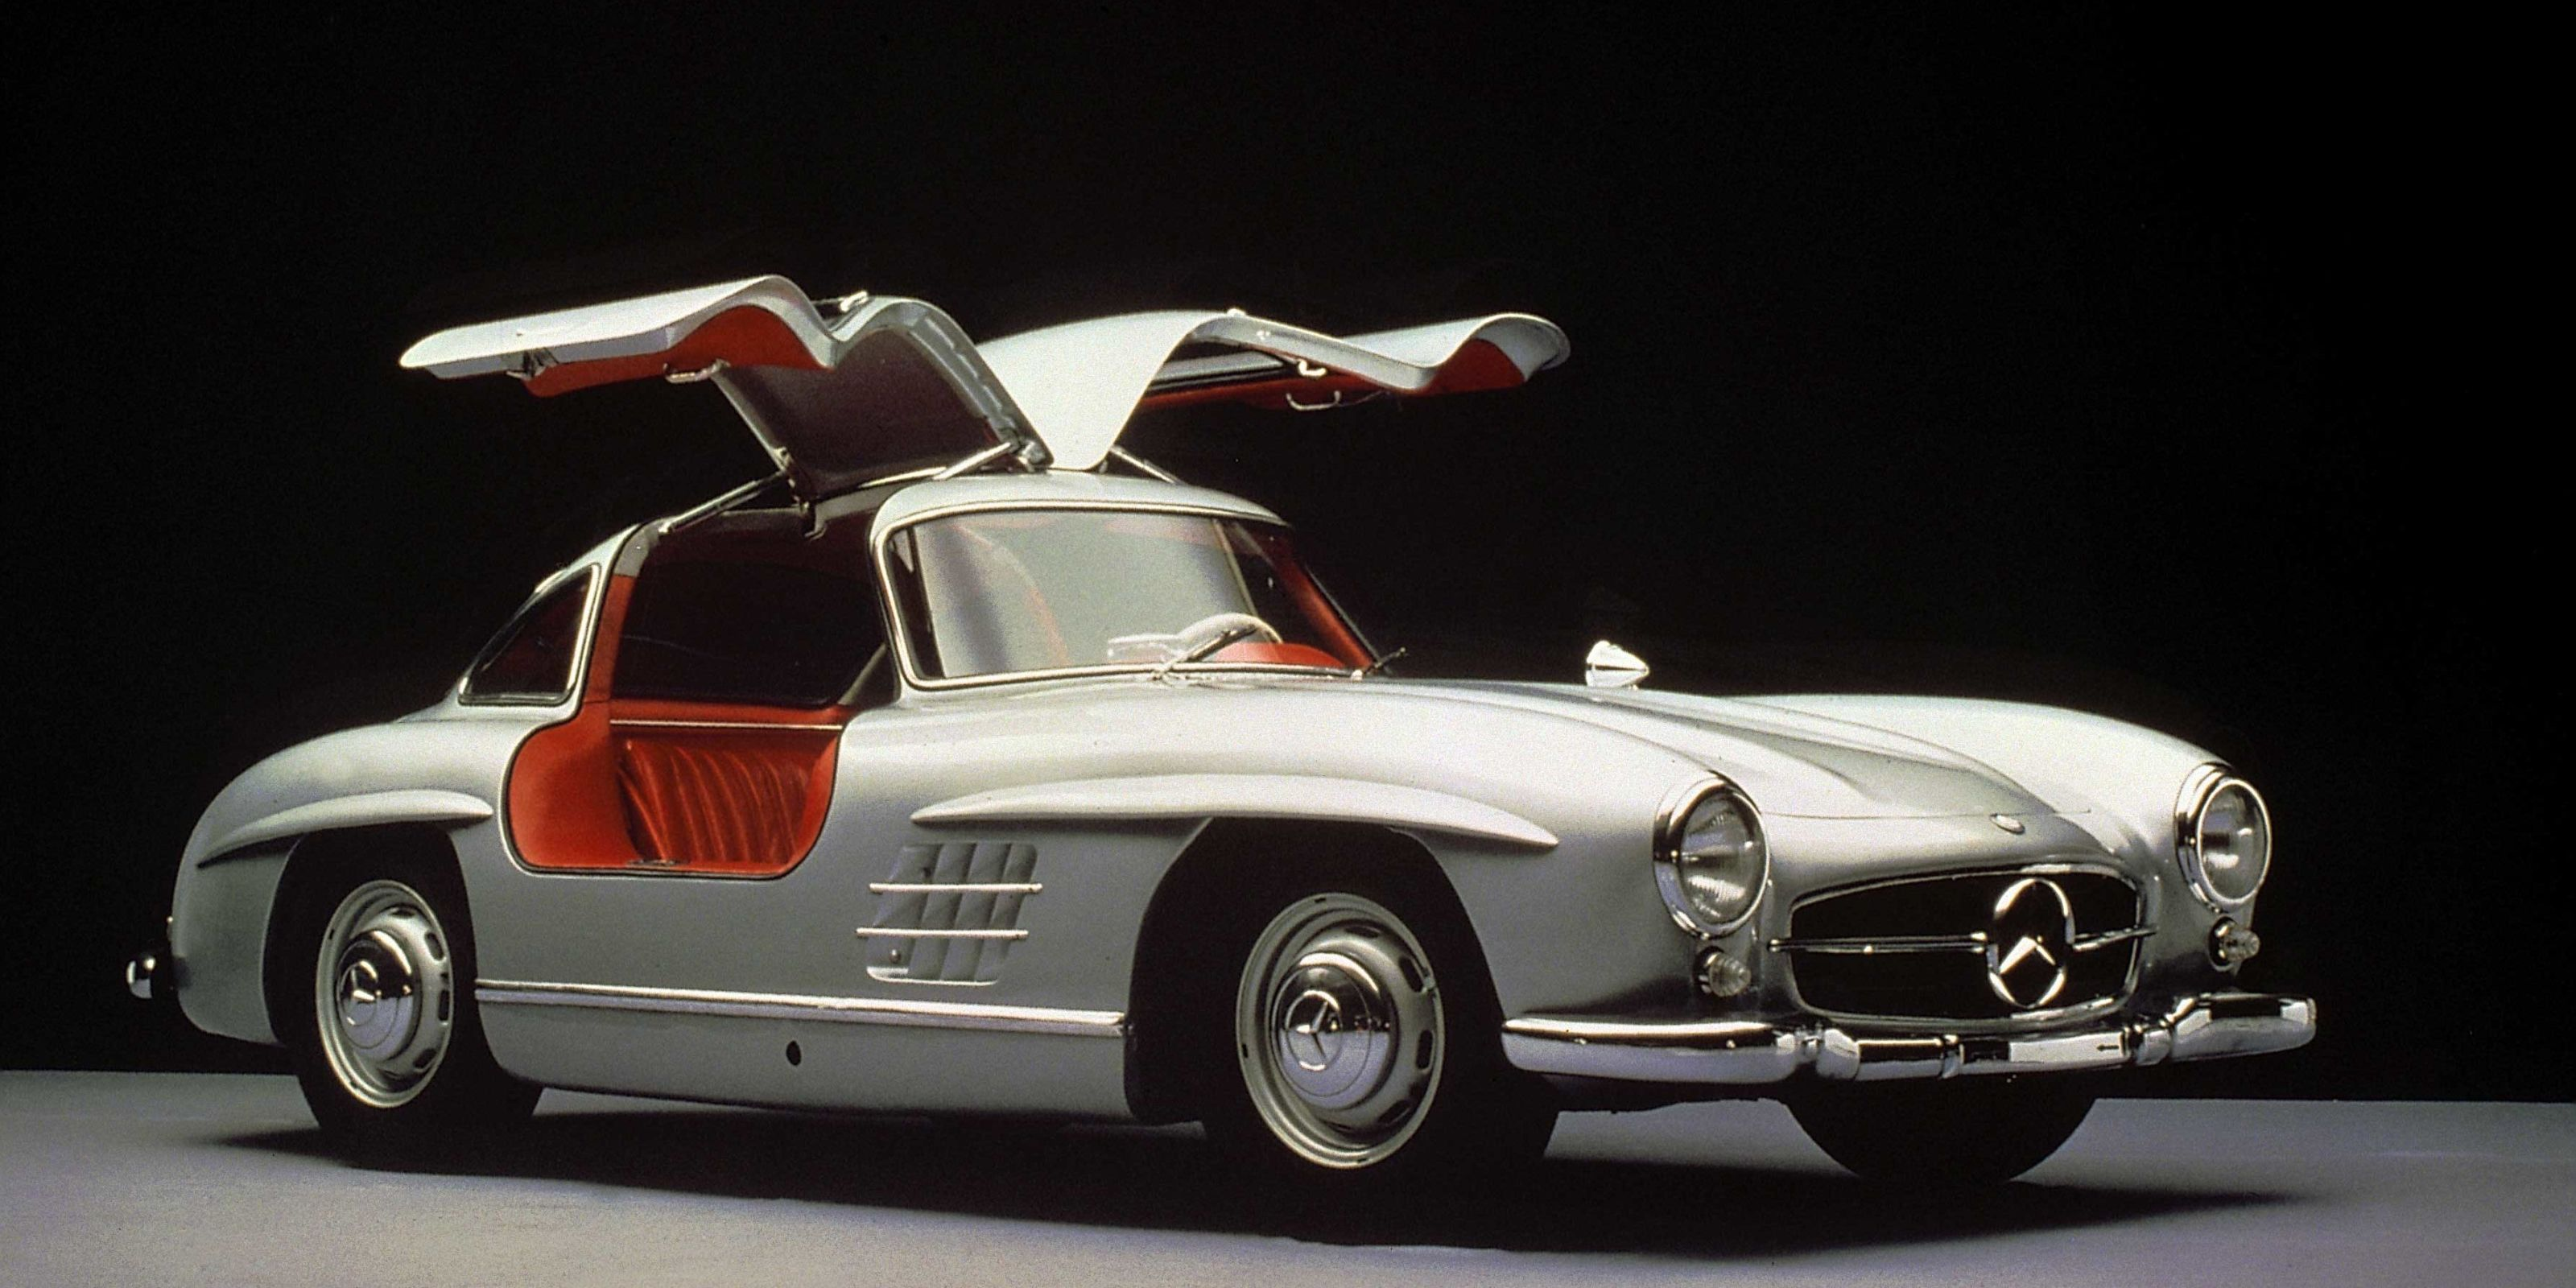 Pictures of classic cars